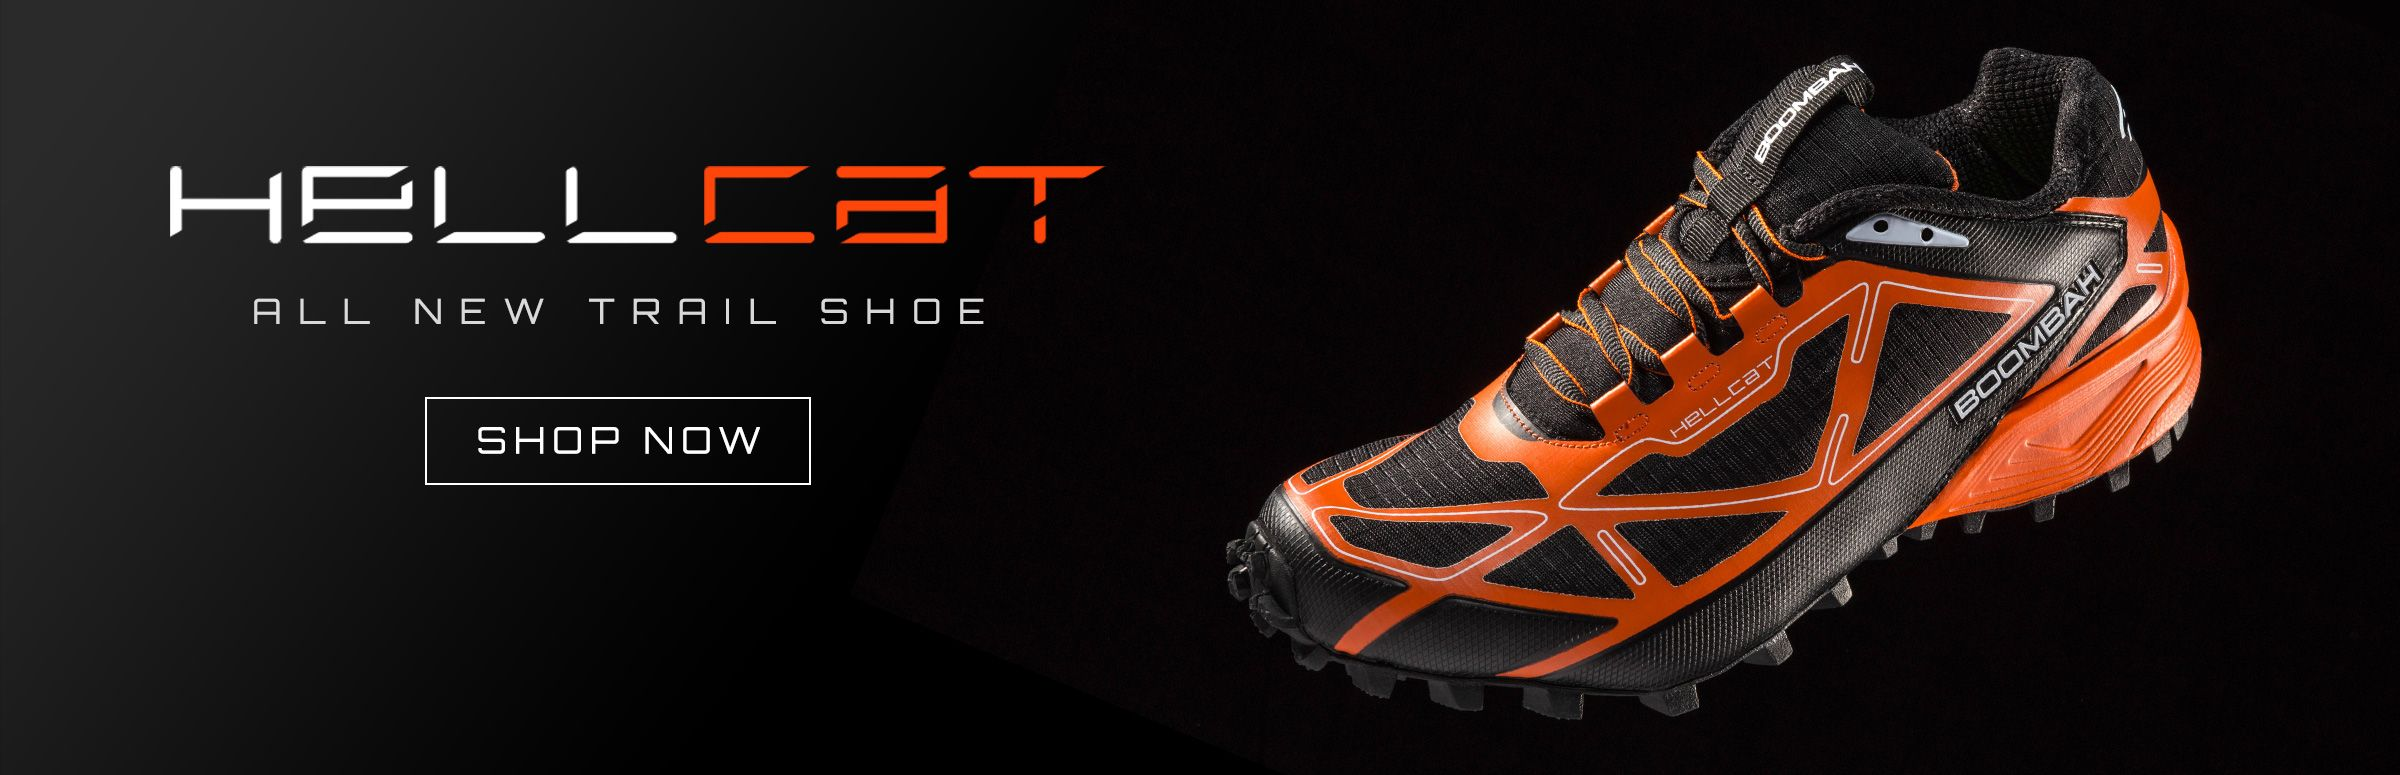 Boombah Footwear Sizing Chart